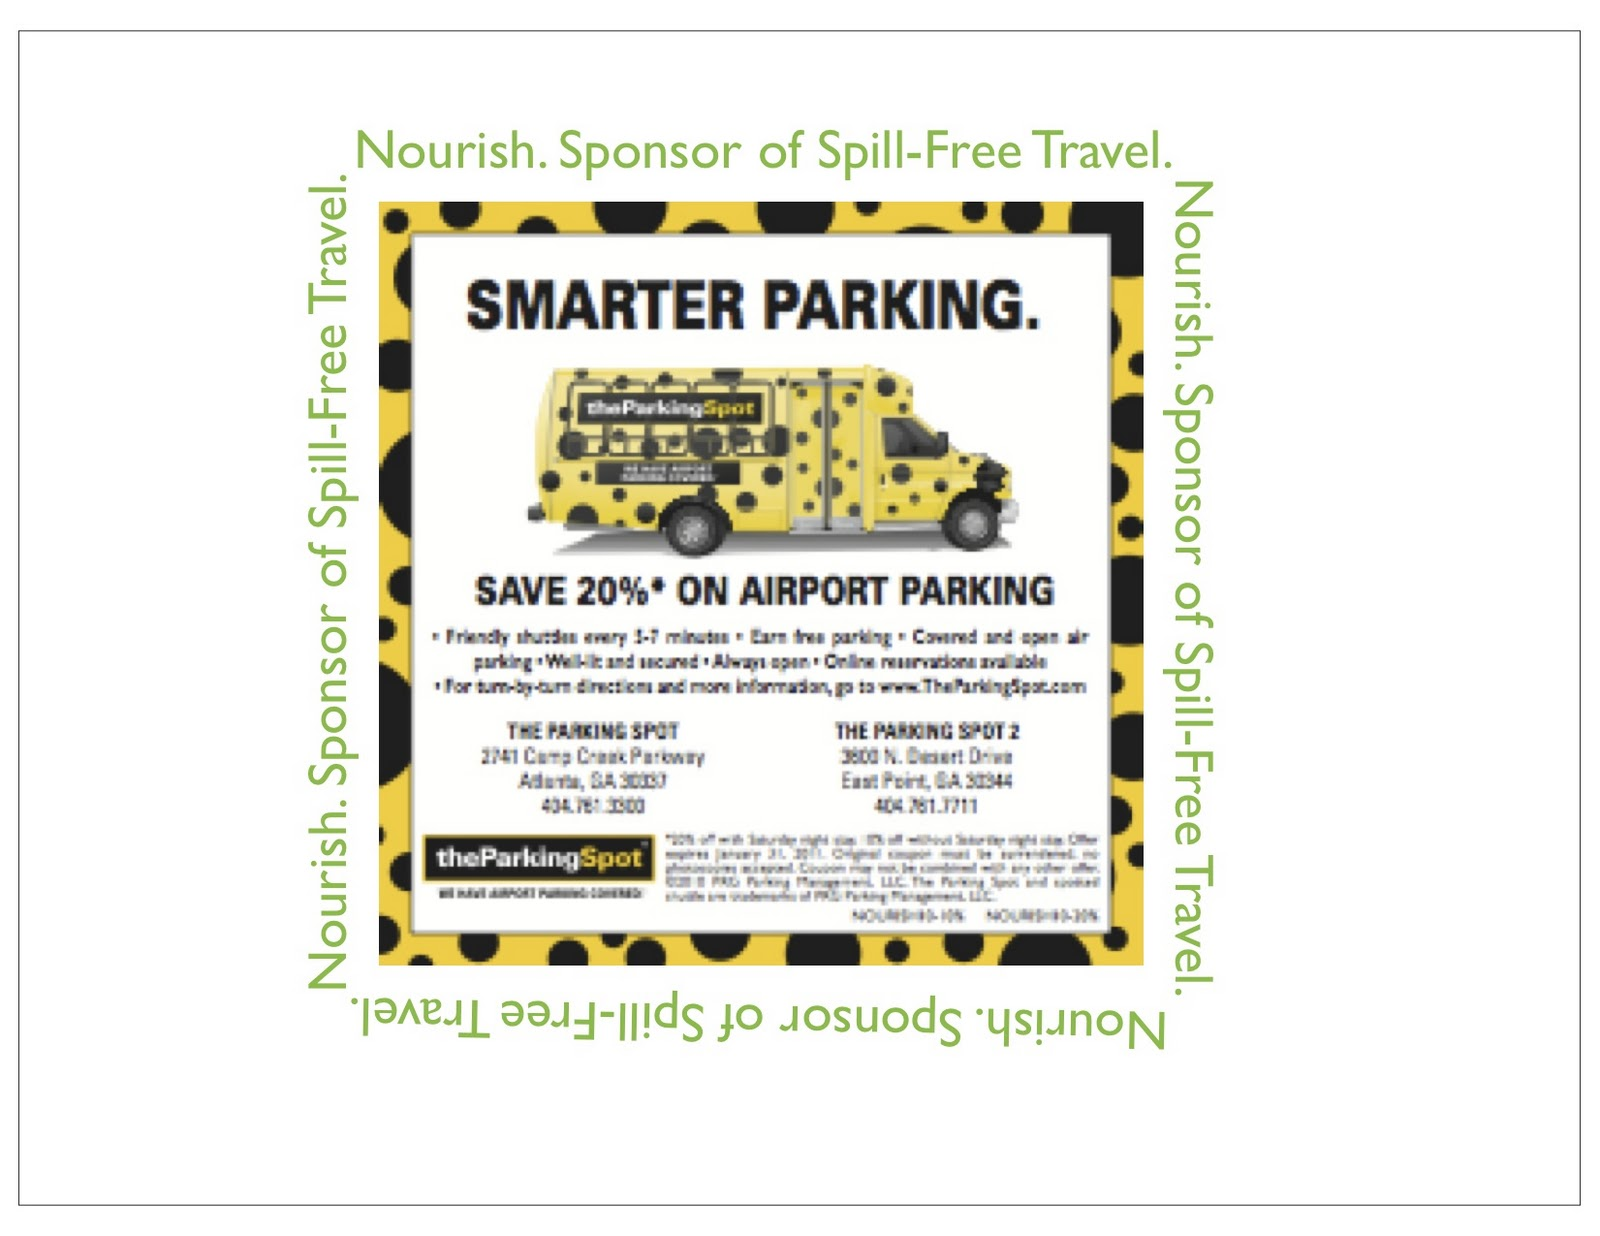 Cheap Airport Parking has partnered with offsite airpoirt parking lots near LAX Airport to provide the cheapest rates on airport parking. Save $5 instantly on parking at LAX Hilton, QuikPark LAX, and the Westin among others at Los Angeles Airport.